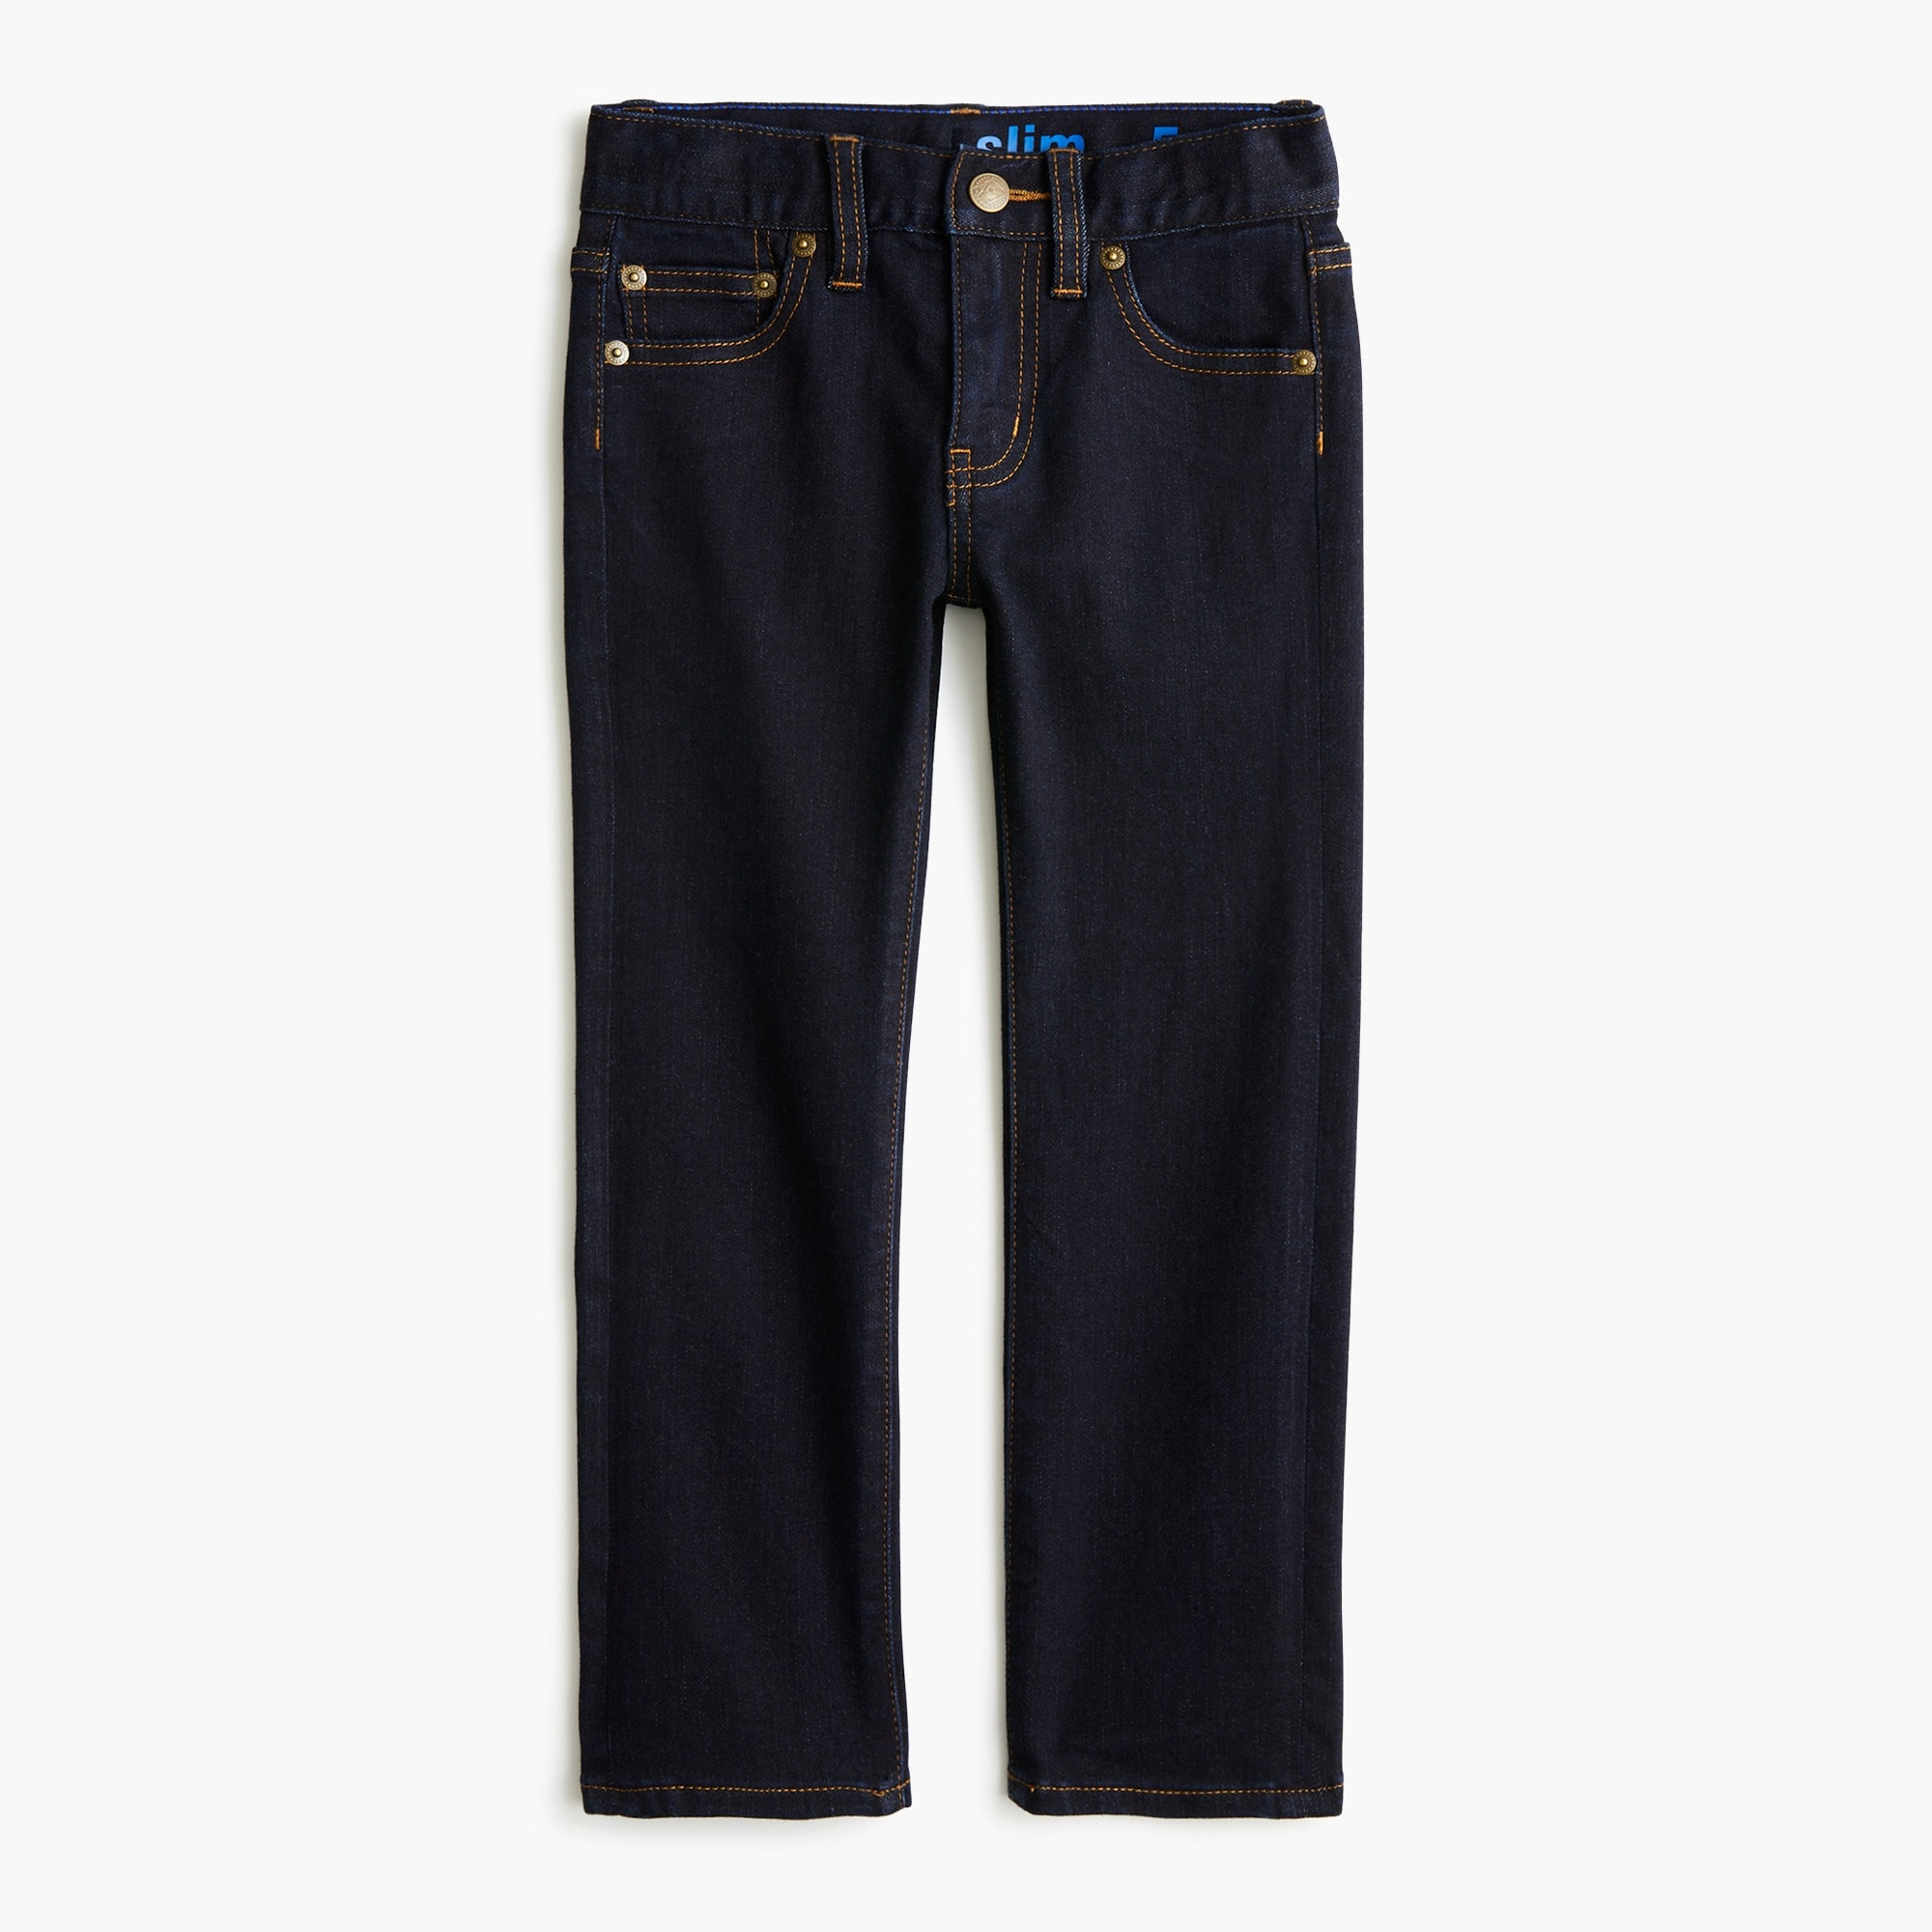 Image 2 for Boys' rinse wash runaround jean in slim fit